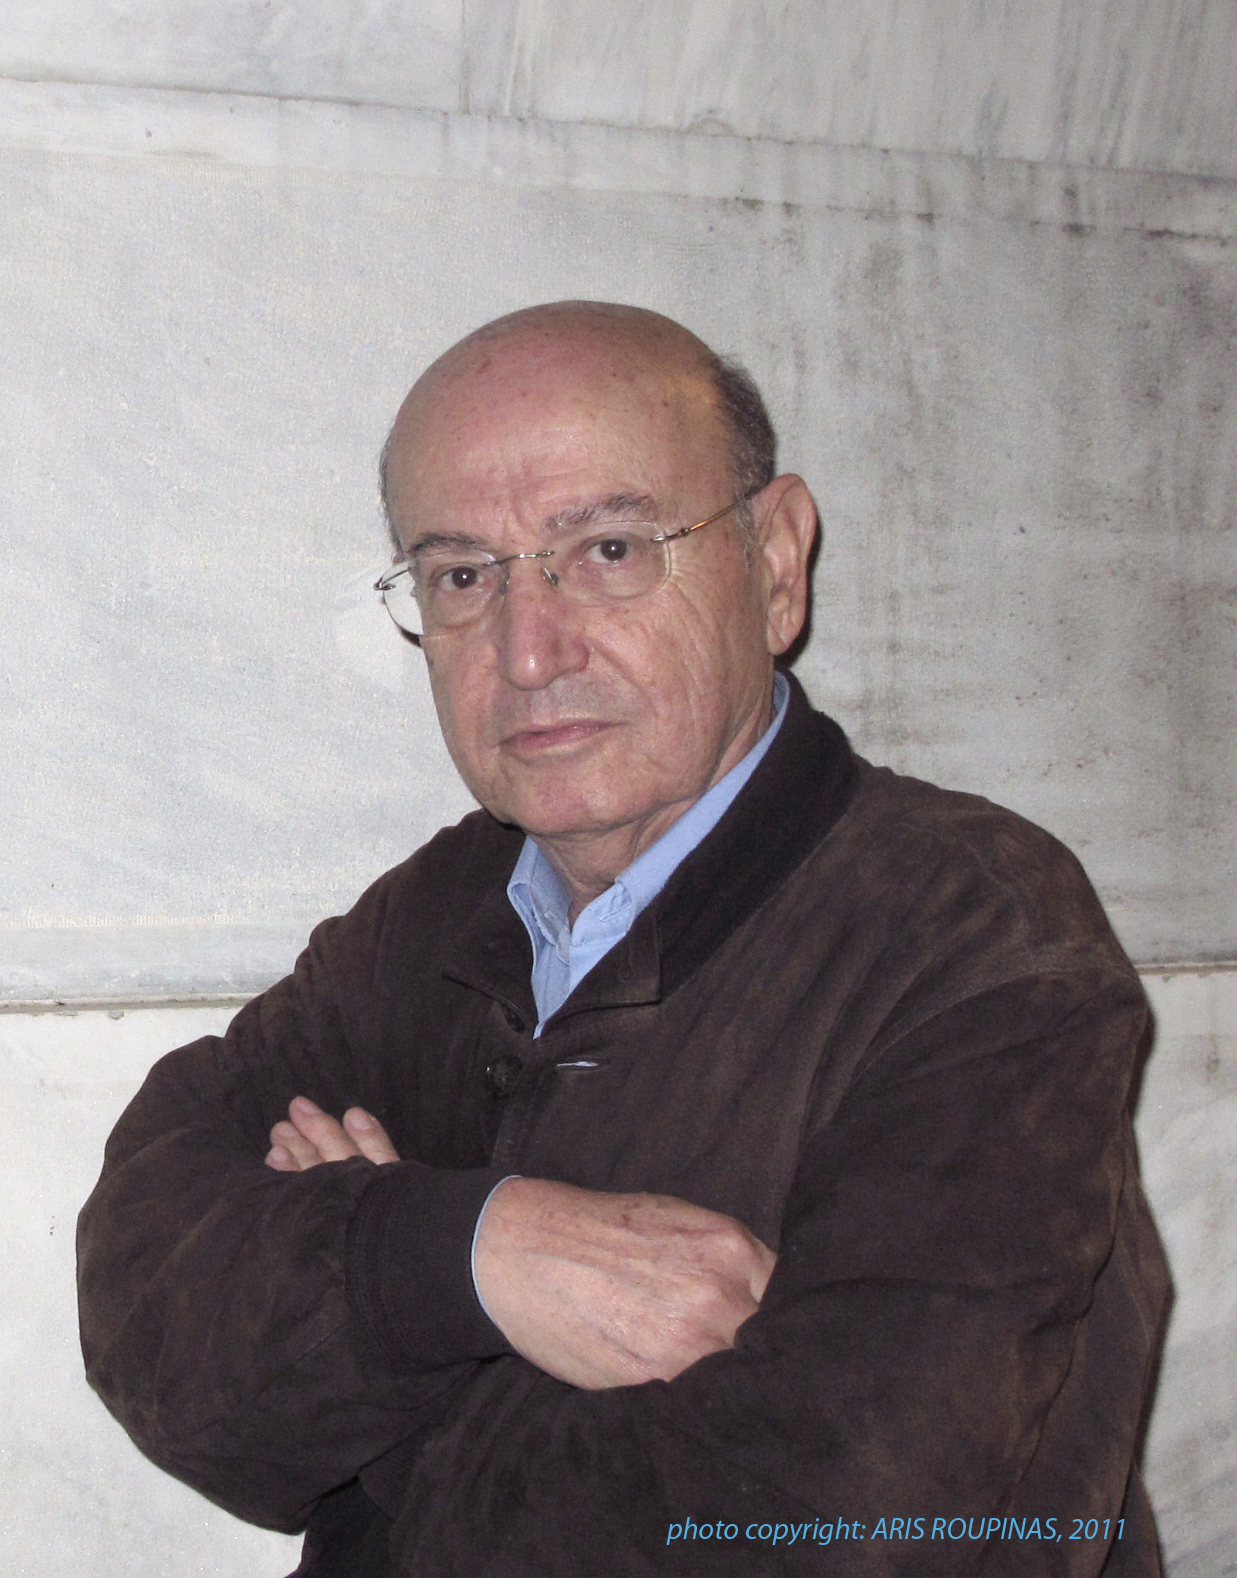 THODOROS AGGELOPOULOS